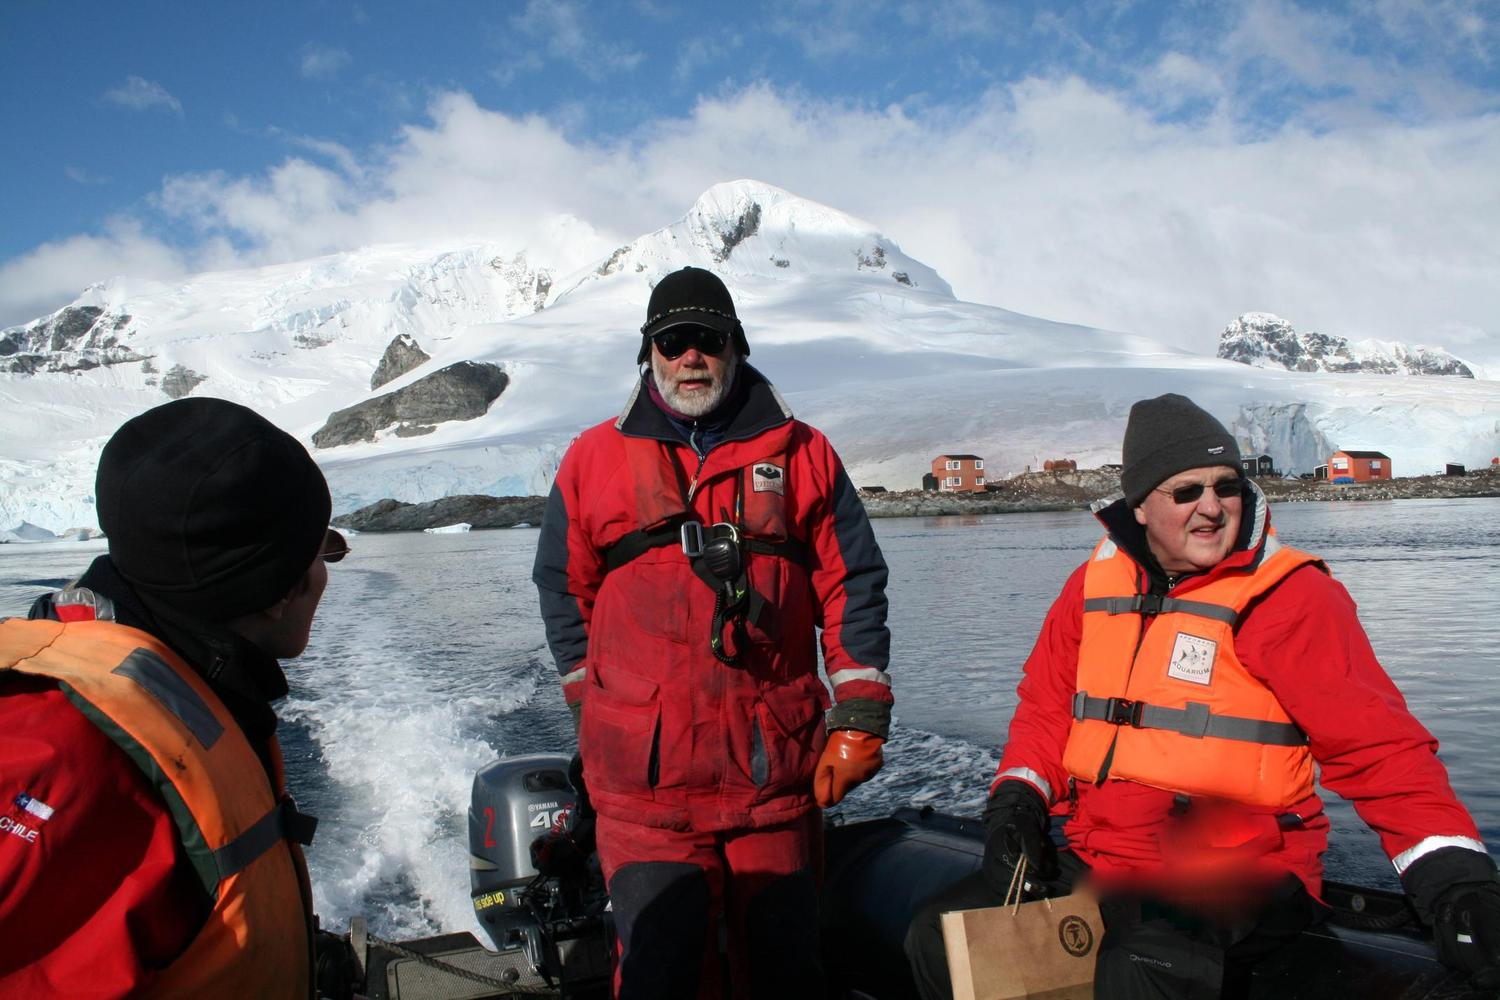 Zodiac captain leading group on shore in Antarctica